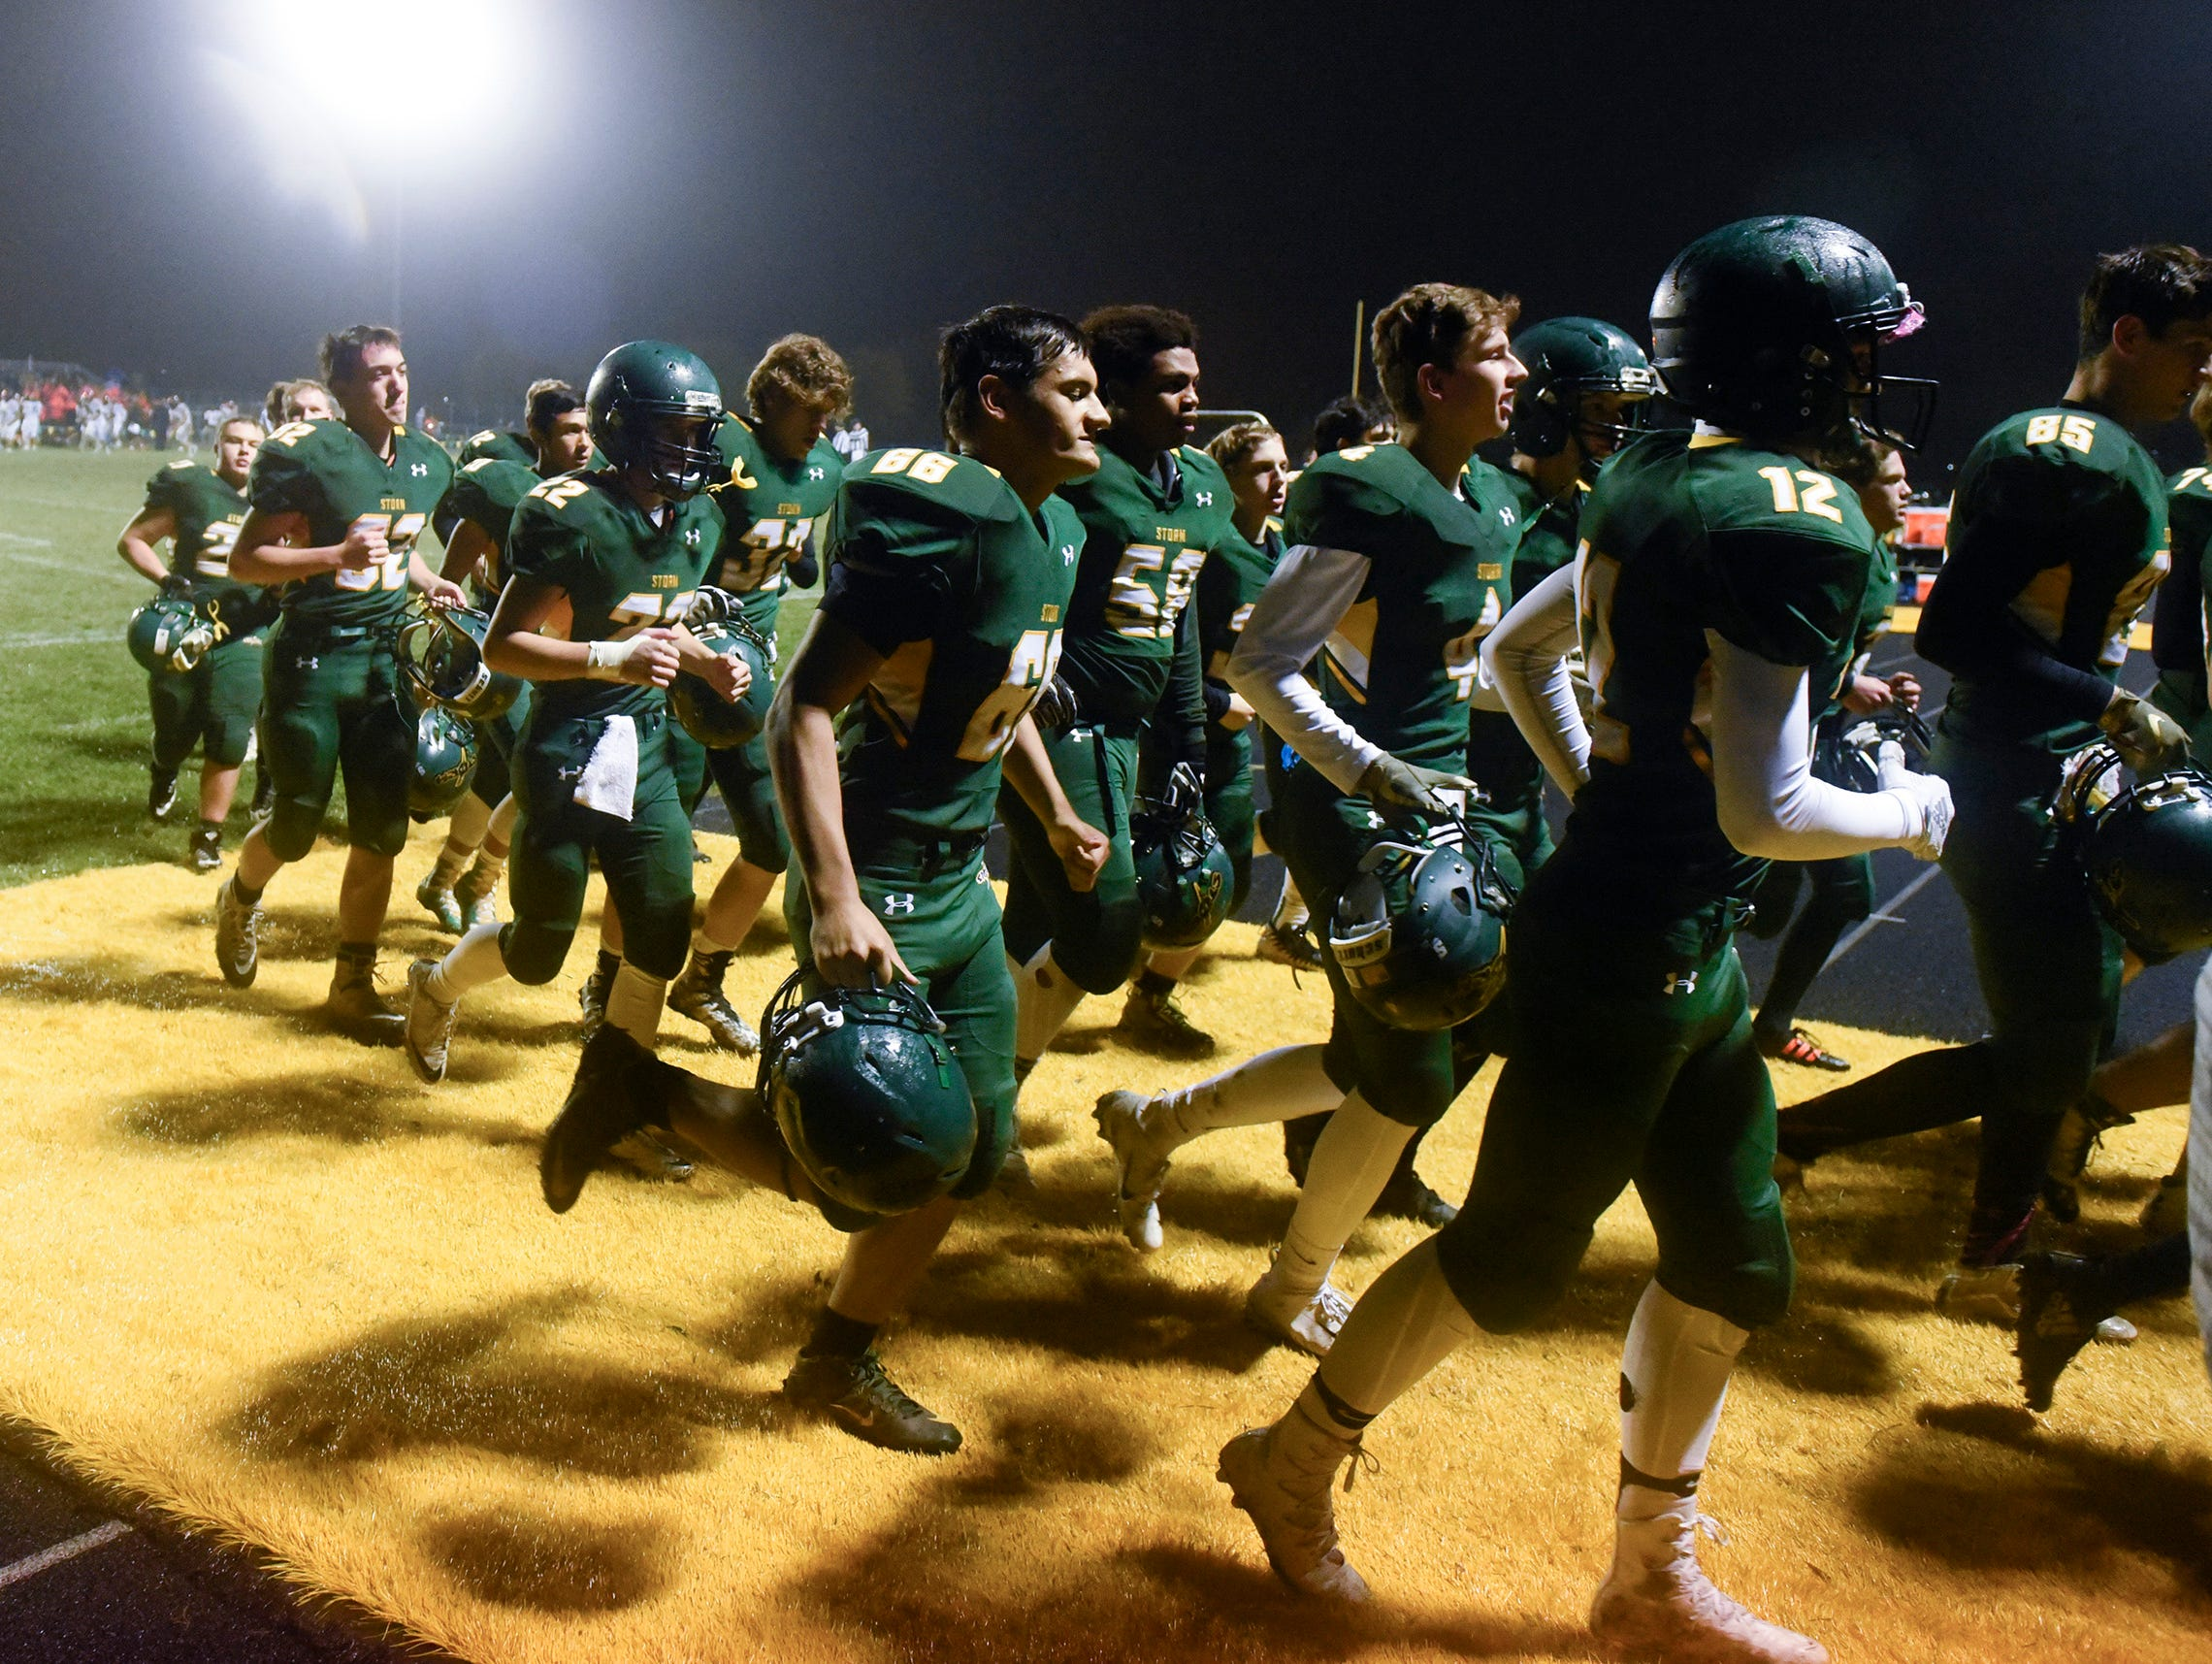 Sauk Rapids' players come off the field at halftime with a 27-6 lead over Tech Friday, Oct. 5, in Sauk Rapids.